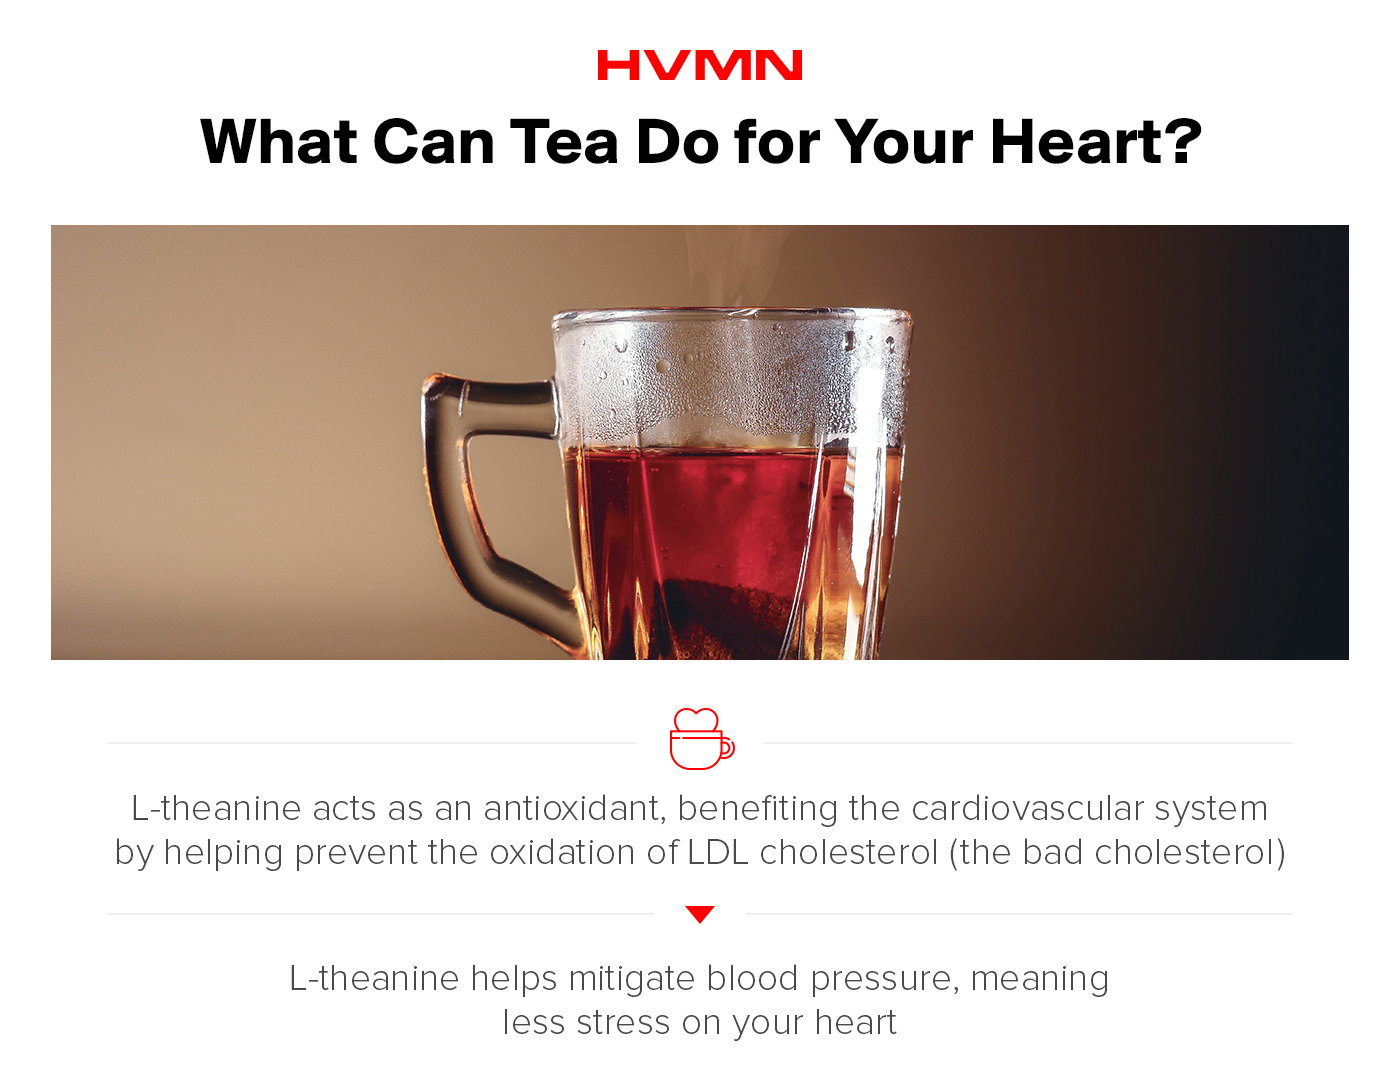 An image of black tea in a clear mug, showing how l-theanine in tea can help your cardiovascular system.